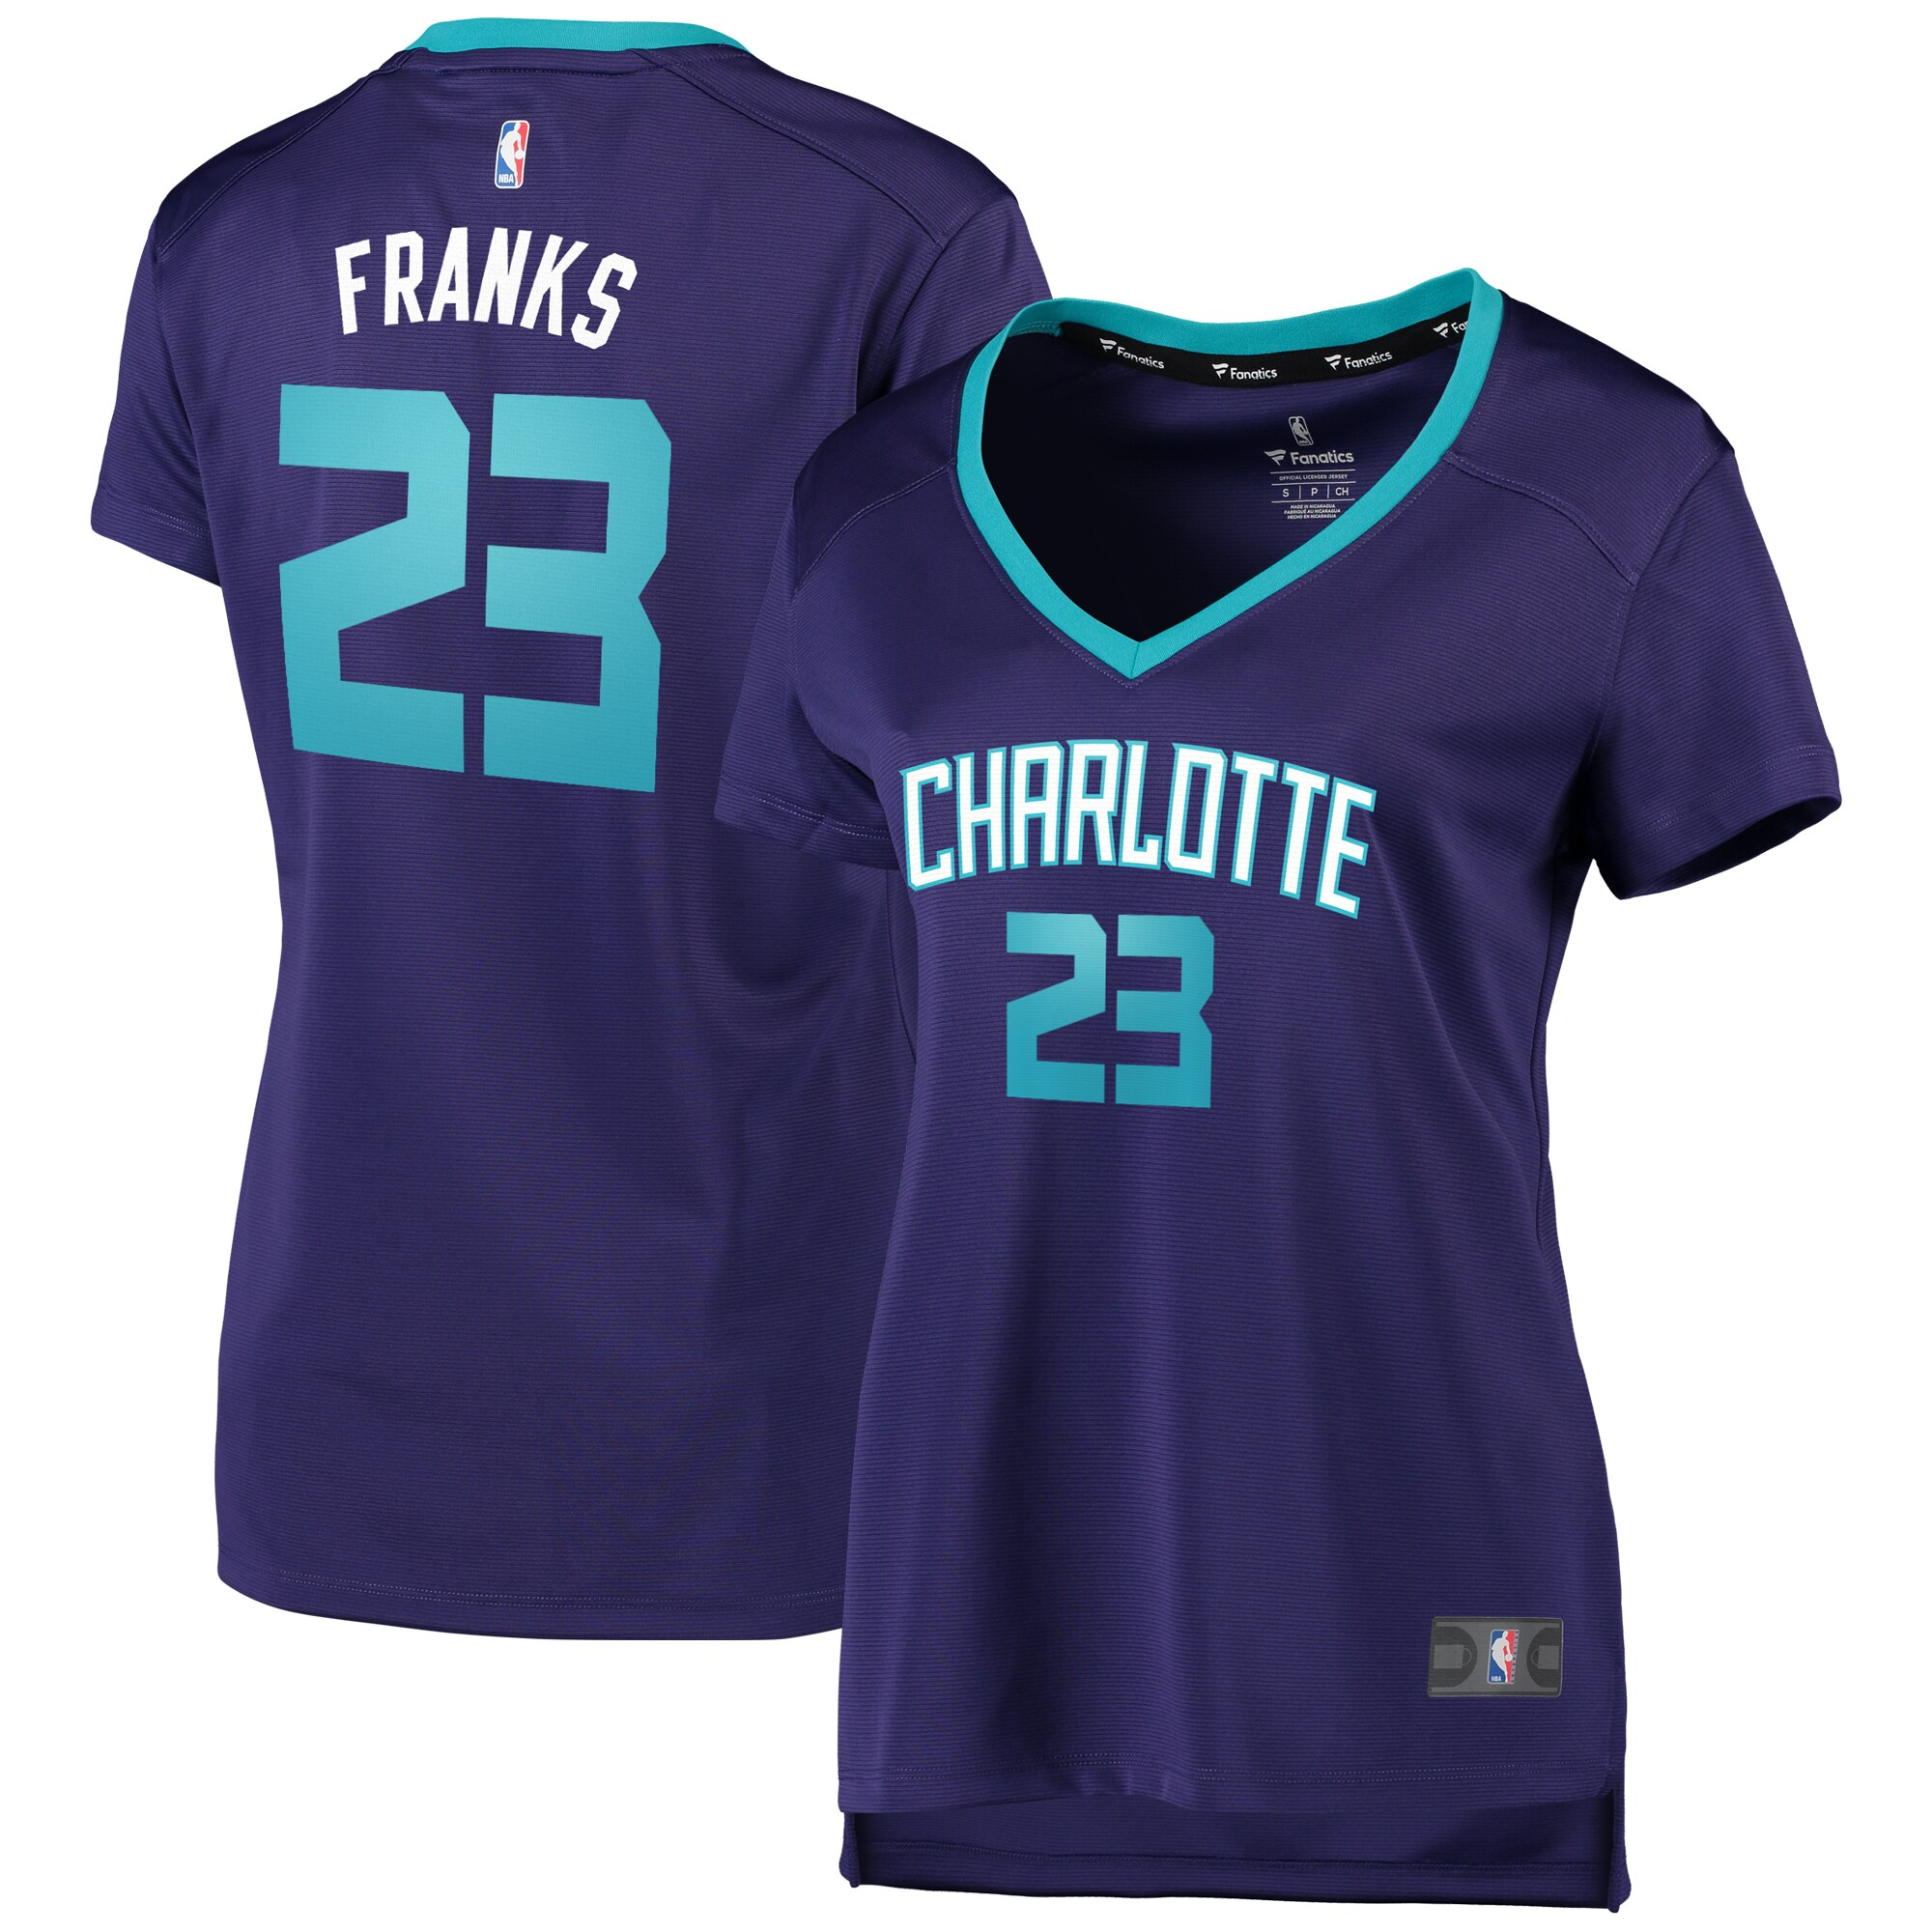 Robert Franks Charlotte Hornets Fanatics Branded Women's Fast Break Replica Jersey Purple - Statement Edition